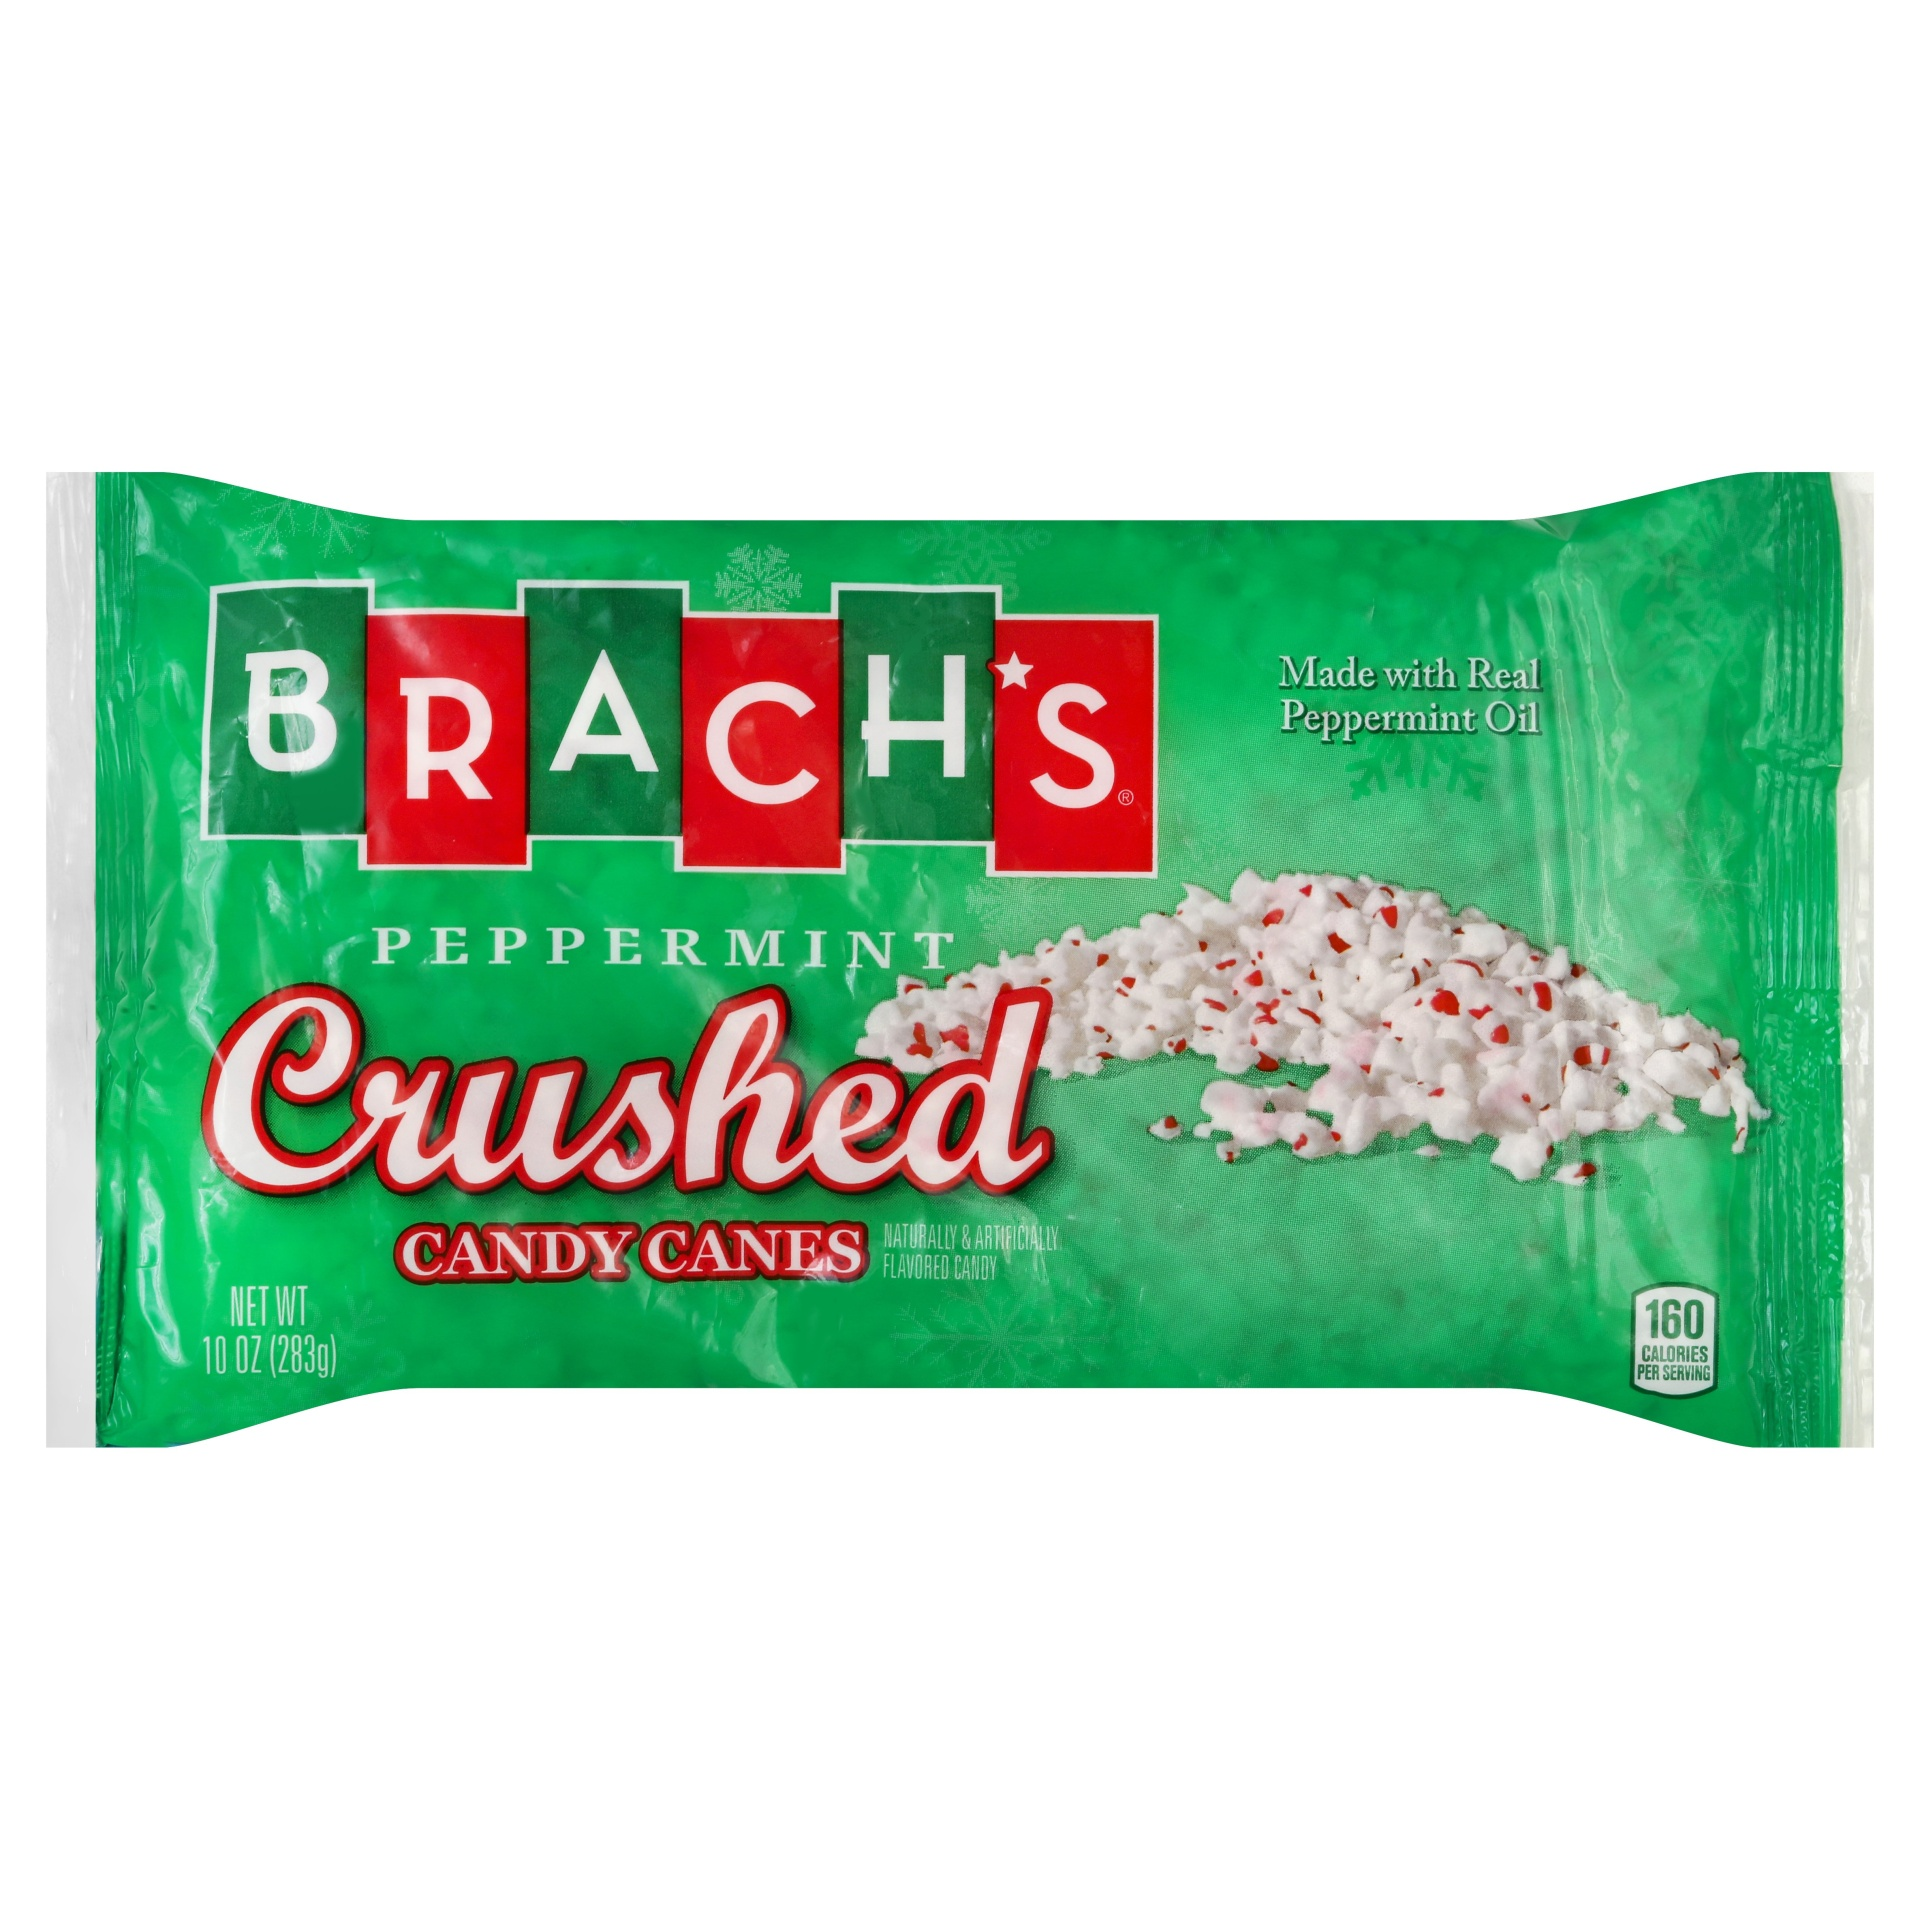 slide 1 of 2, Brach's Crushed Peppermint Candy Cane,